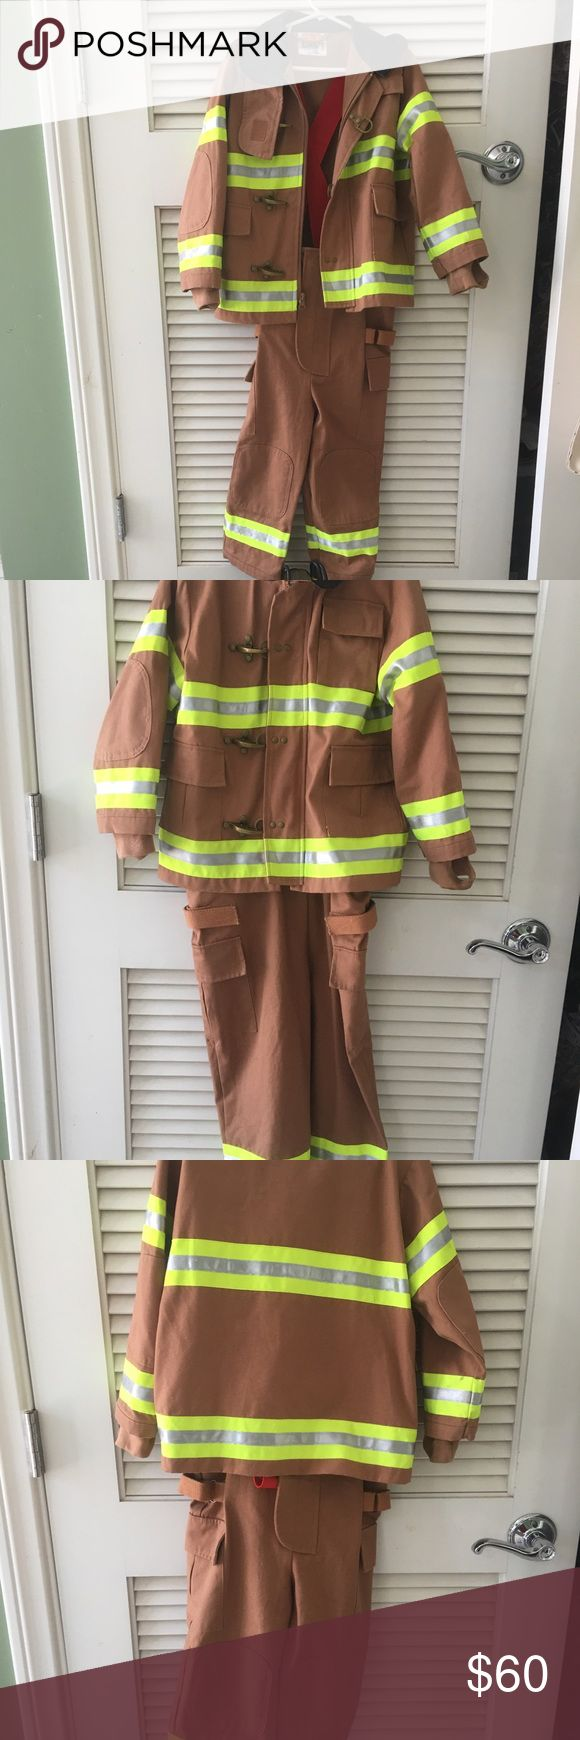 Boy's 3T-4T high quality fireman costume Halloween Selling the night reflector atriped jacjet with deep pockets, zip, hook toggle closures, pants are zip with suspenders. Lots of pockets, roomy and comfy.  Boots are rubber, size 10. Firehat has a police sticker you can peel off to show fireman sticker underneath. Has son's name on label inside jacket. You can cut that out. Costumes Halloween